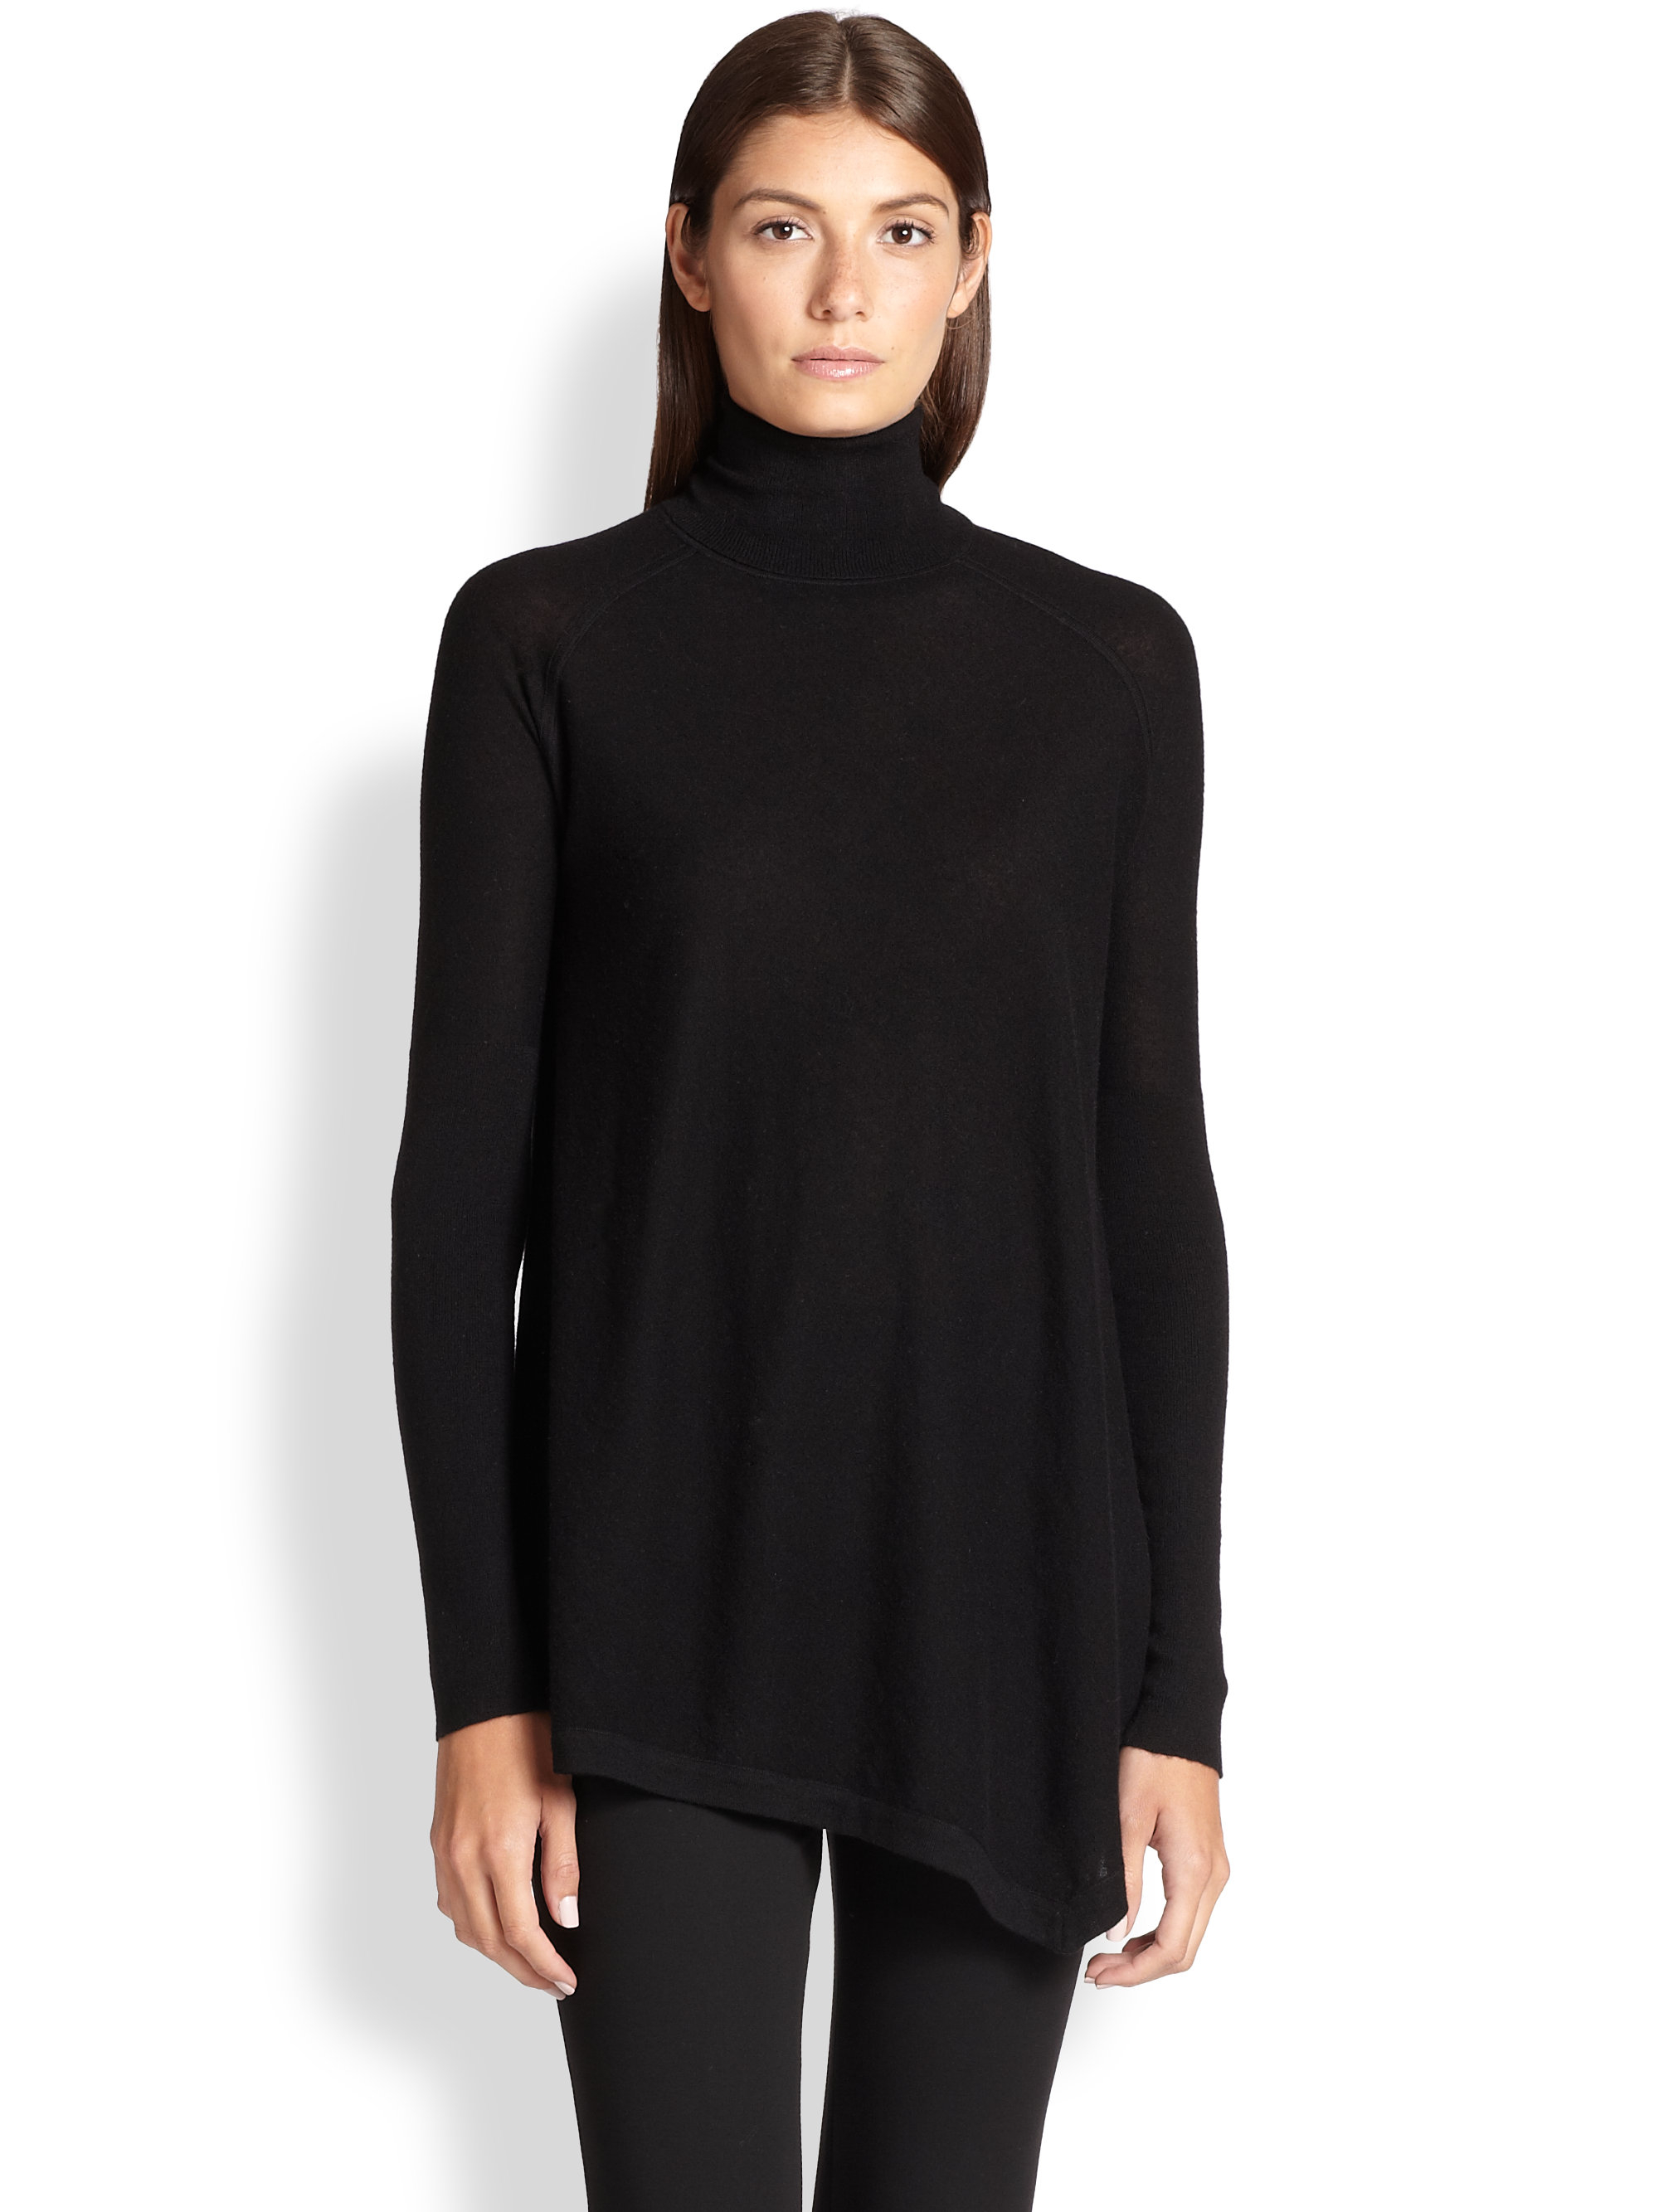 Donna karan Asymmetrical Cashmere Turtleneck Tunic in Black | Lyst